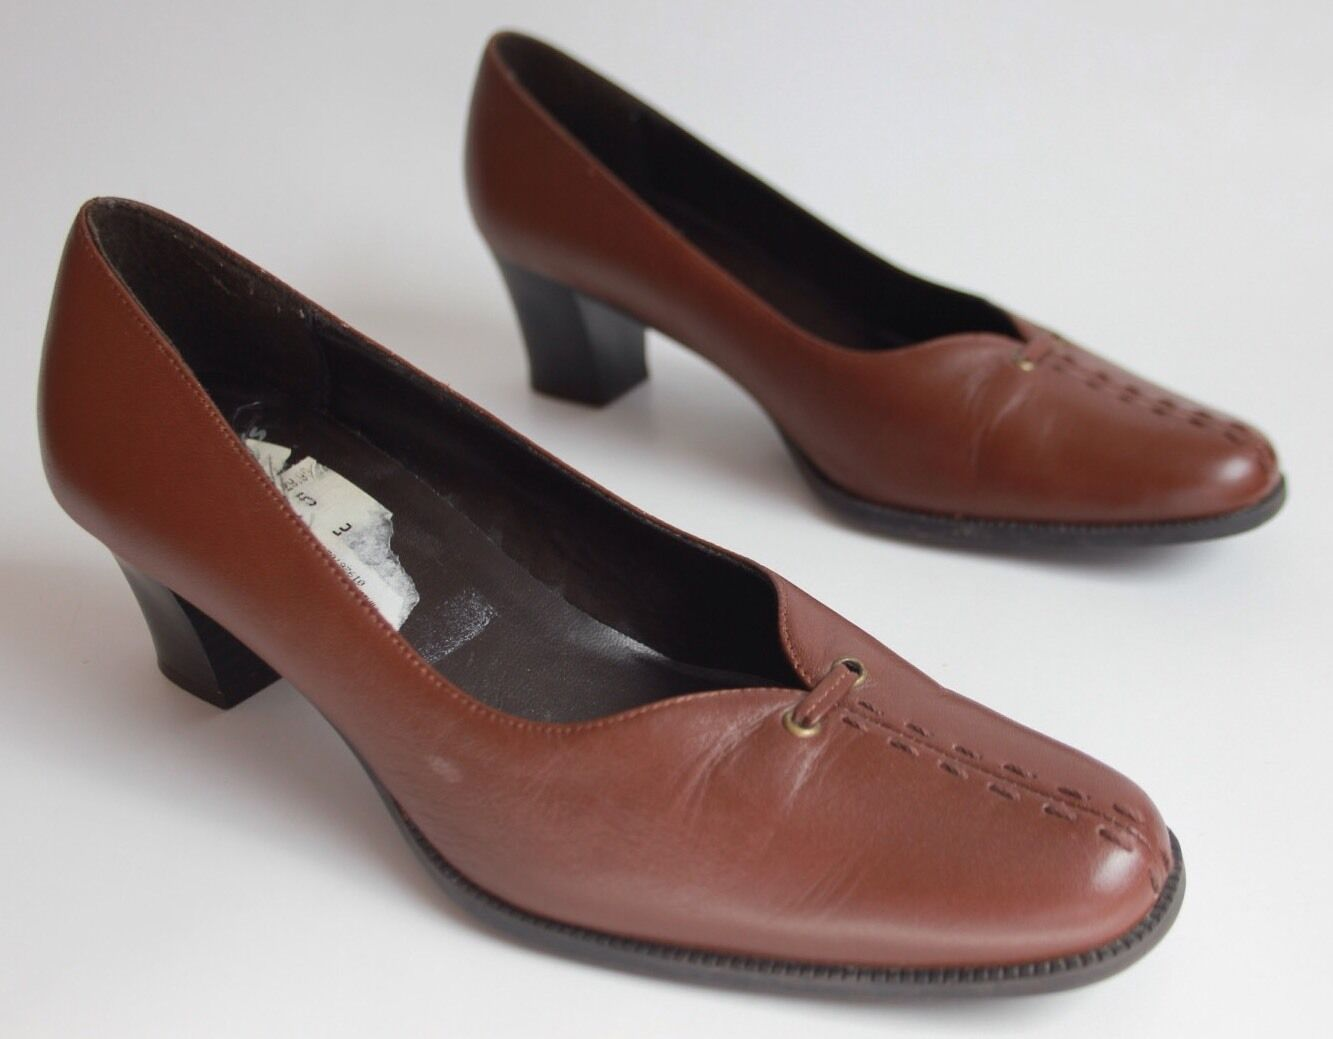 Clarks cushion soft womens mid heel leather shoes size 5